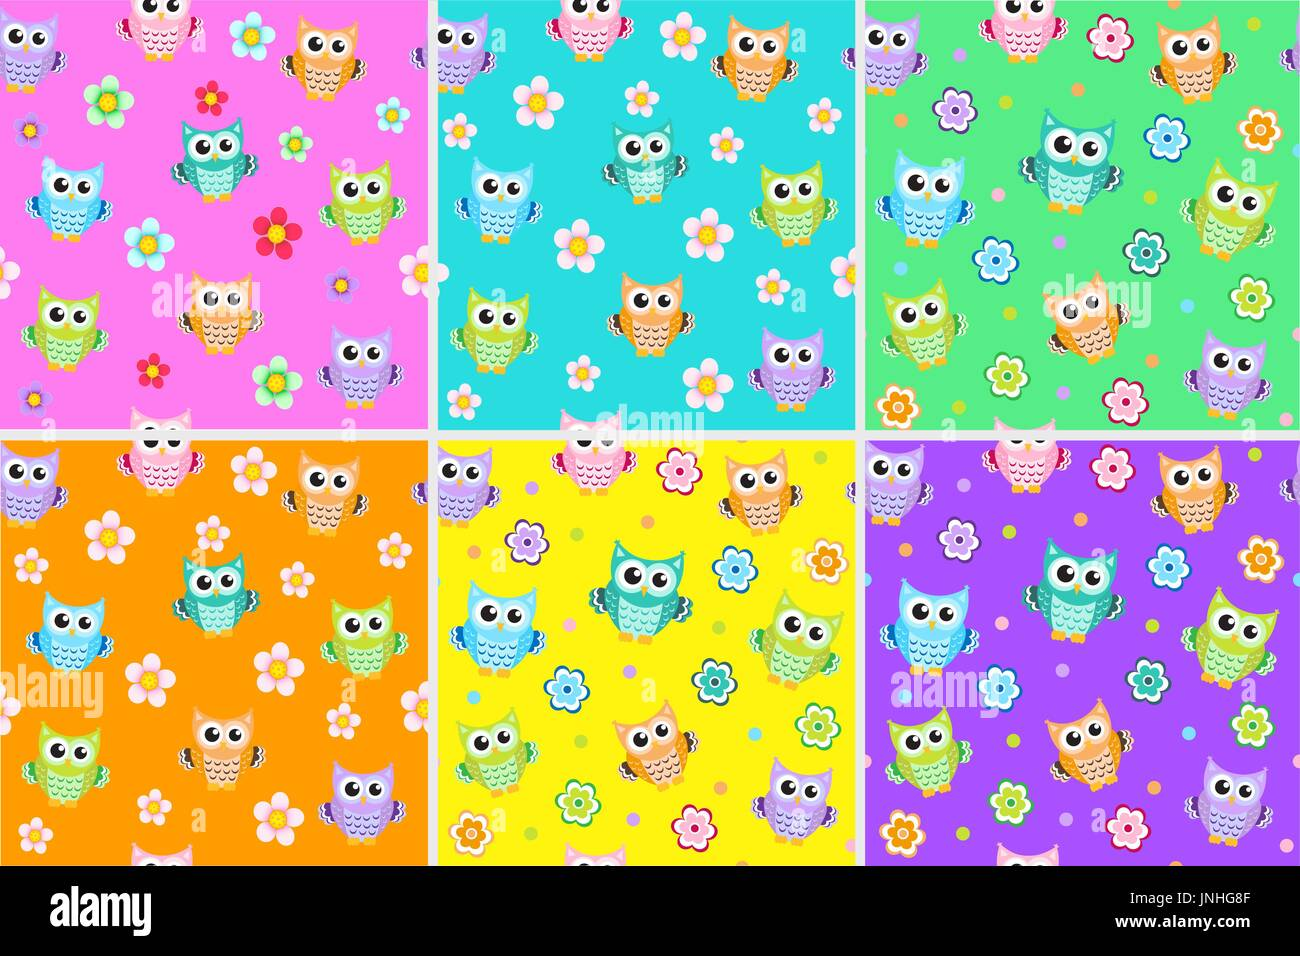 owls vector stock photos u0026 owls vector stock images alamy